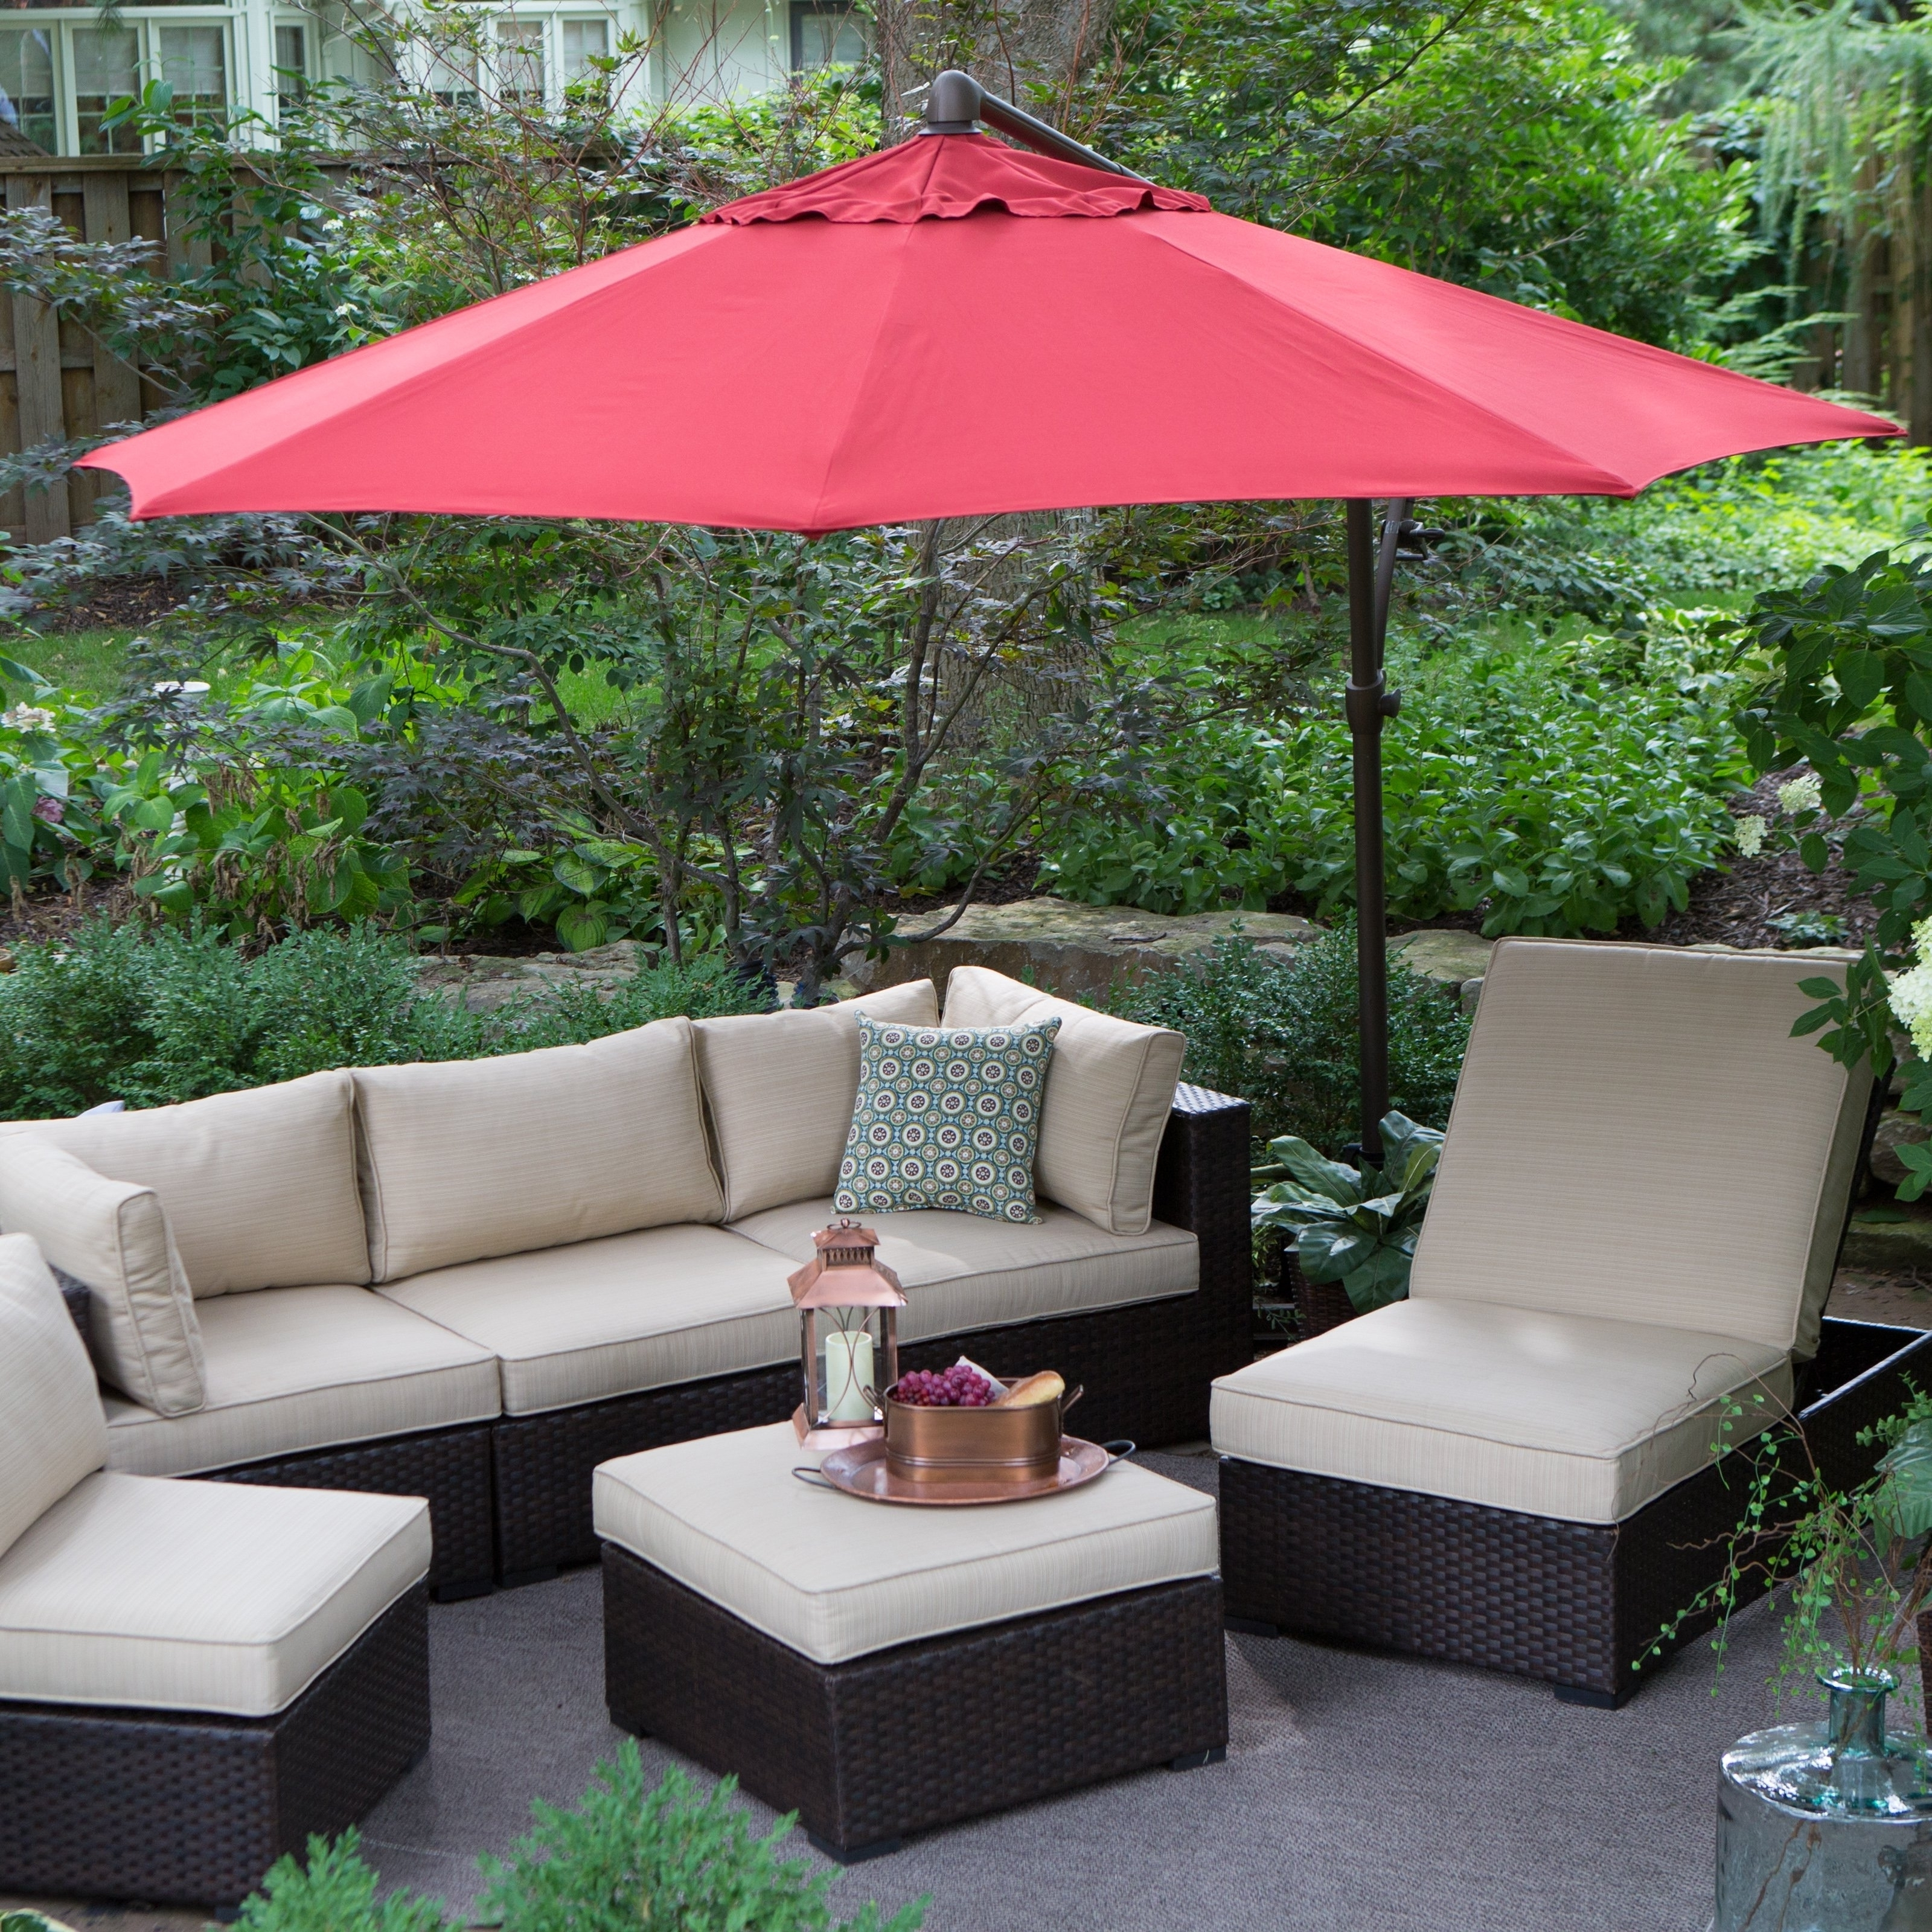 Patio Umbrella Buying Guide — Home Design Within Preferred Offset Cantilever Patio Umbrellas (View 16 of 20)